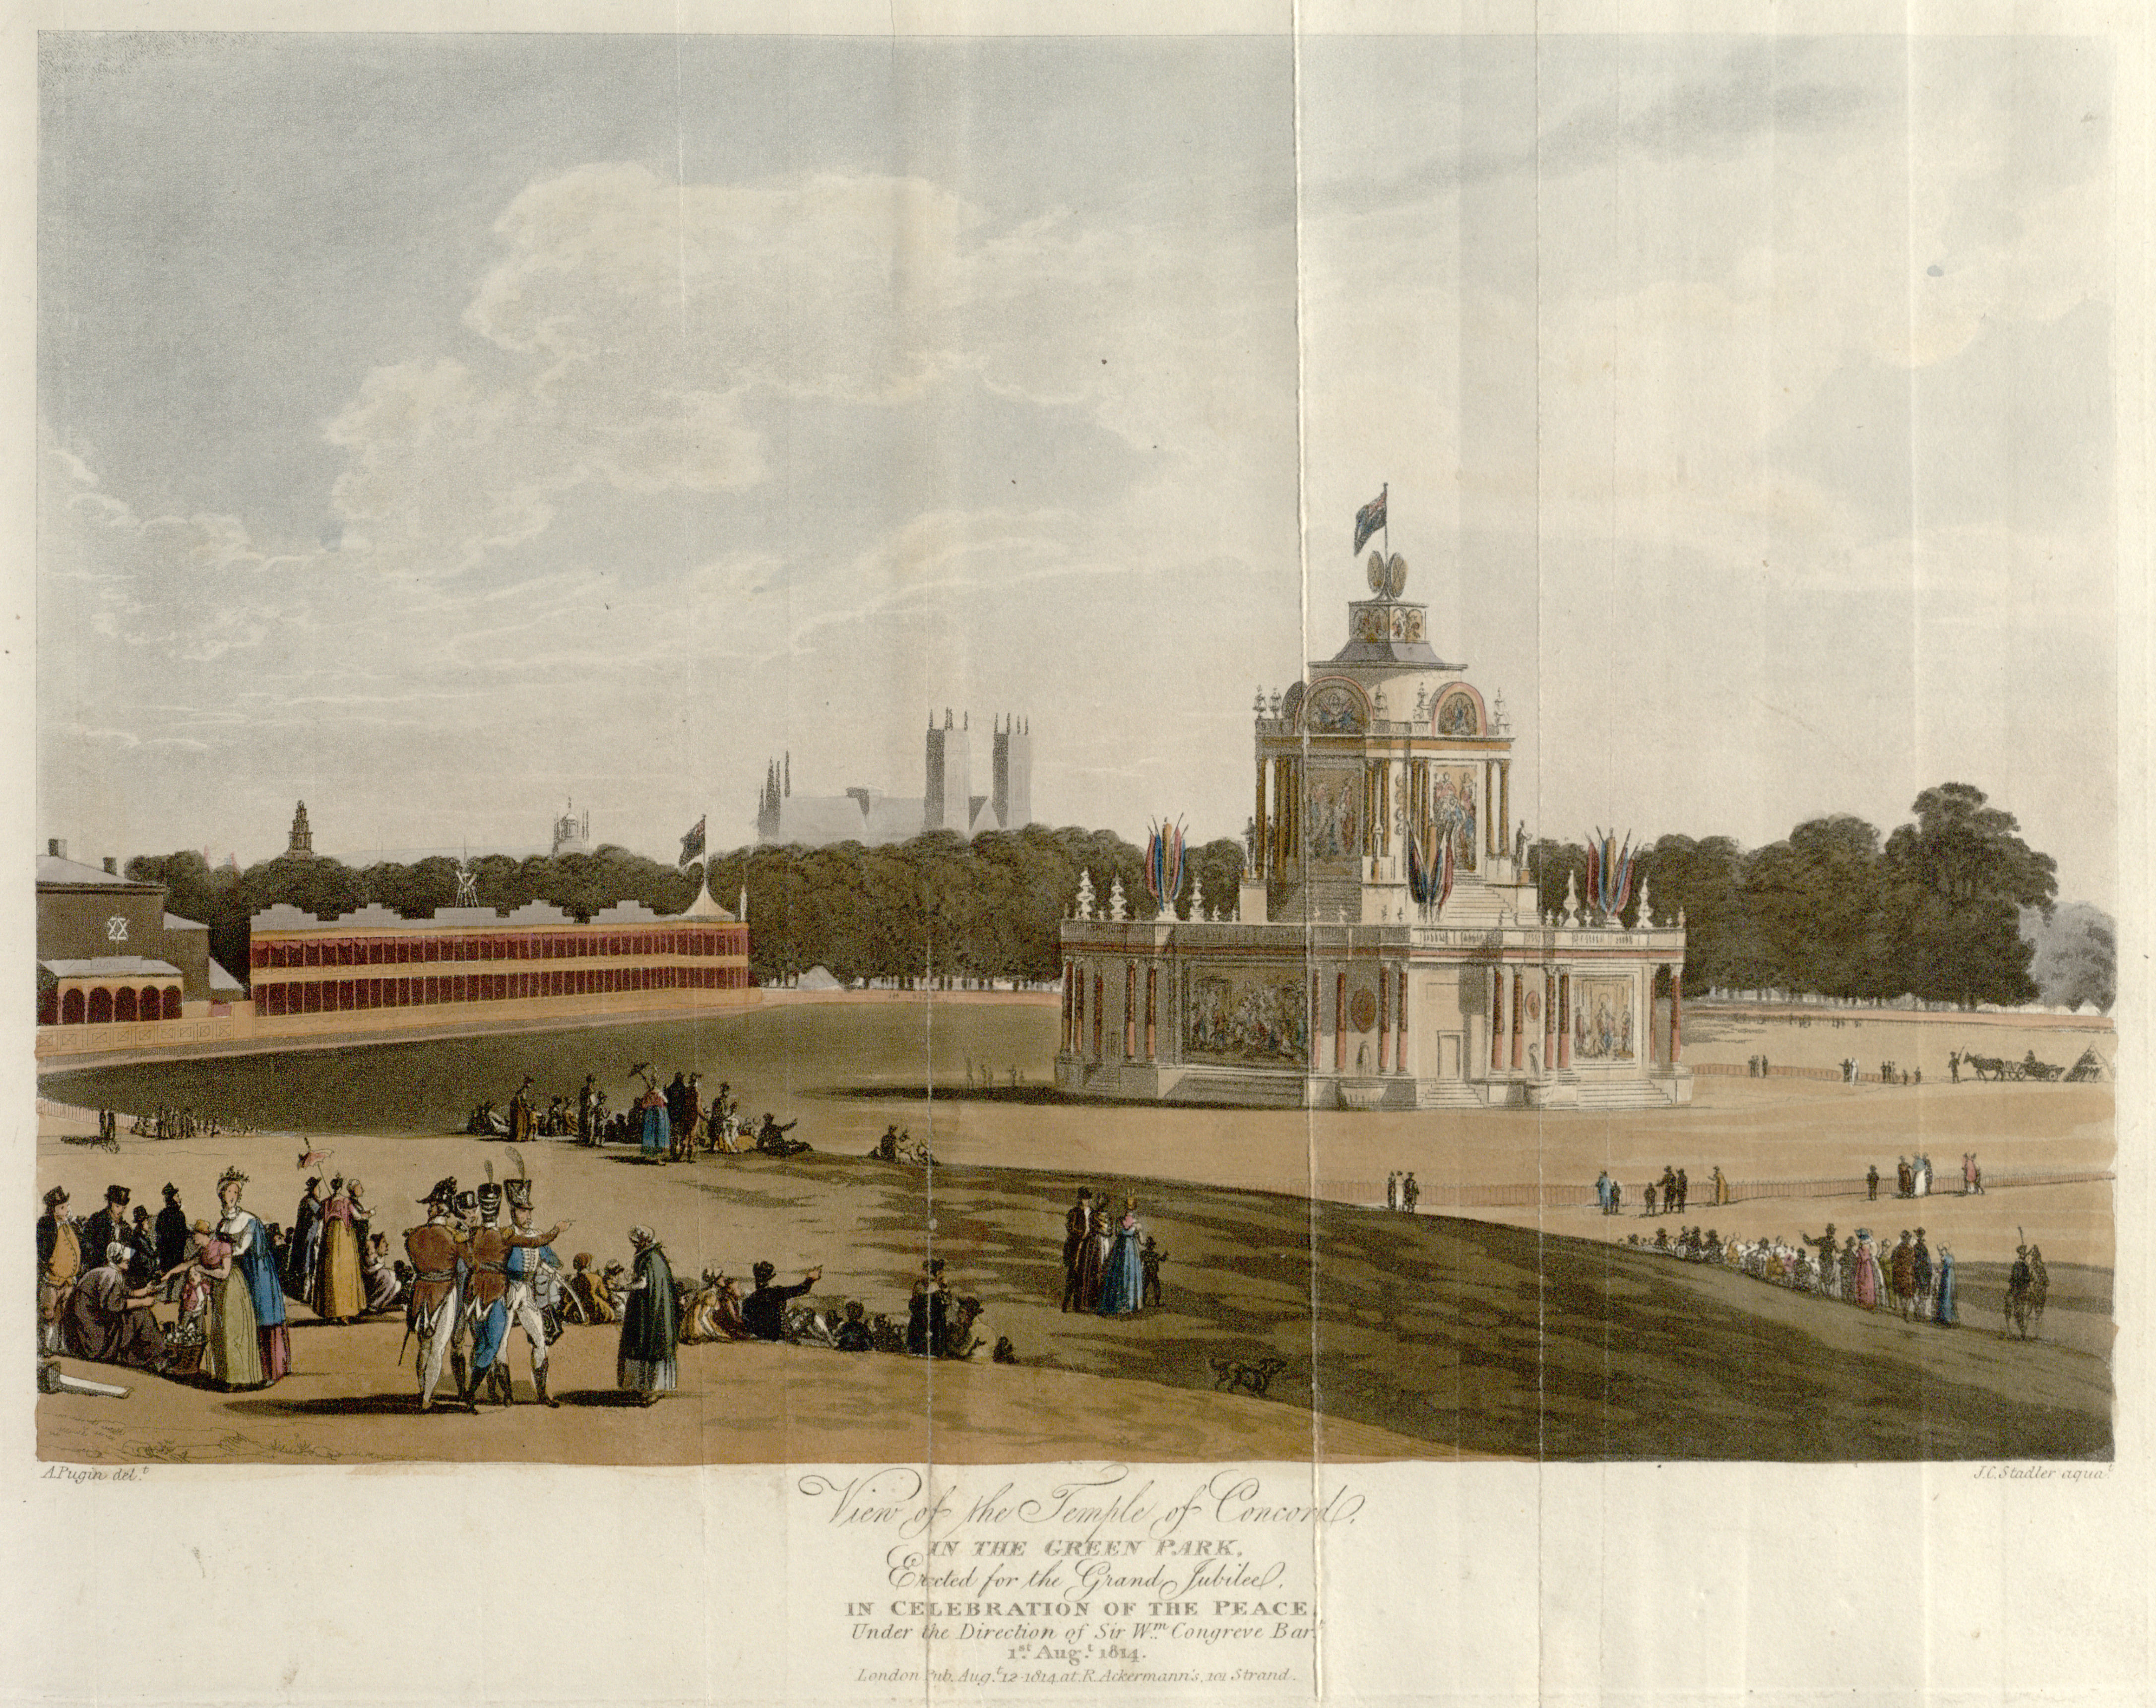 08 - Papworth - View of the Temple of Concord, in the Green Park, Erected for the Grand Jubilee, In Celebration of the Peace, Under the Direction of Sir Wm Congreve Bart